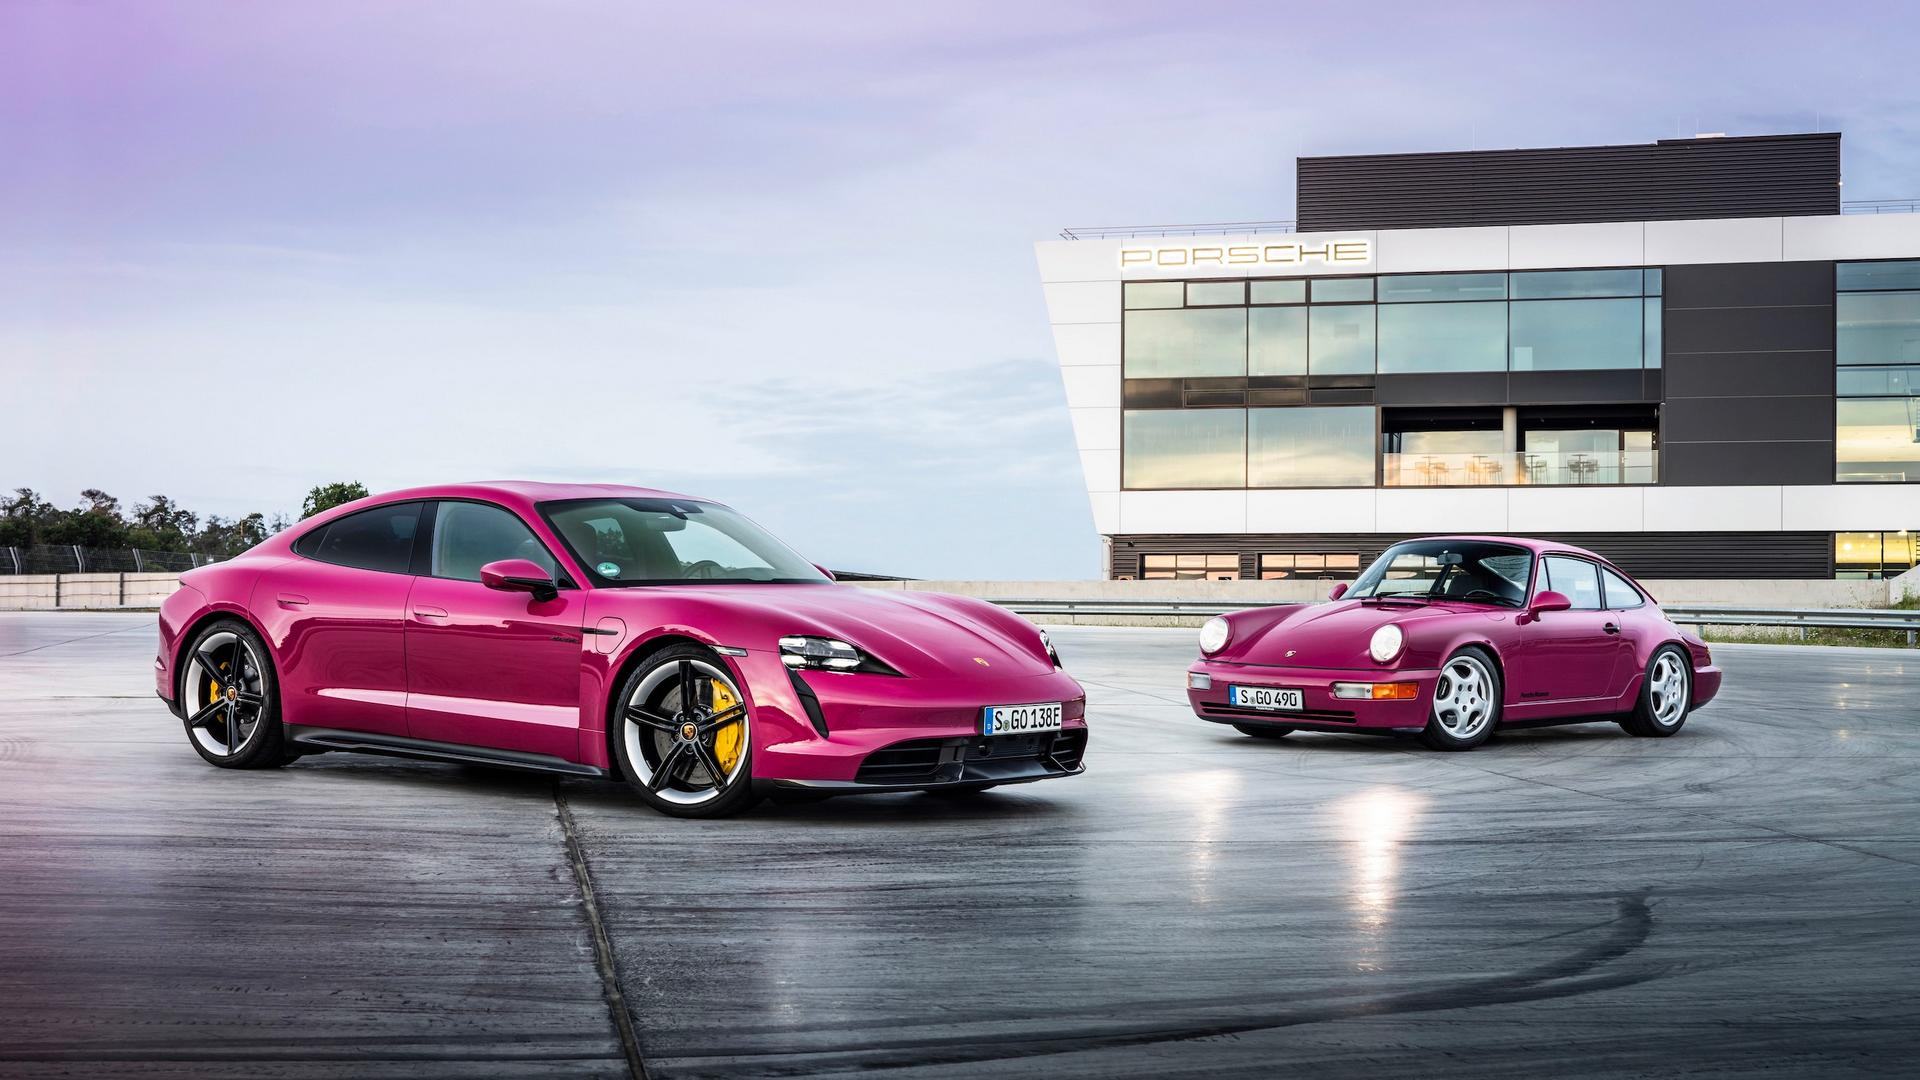 Back to the 90s: Porsche Taycan Now Available in Rubystone Red and Acid Green